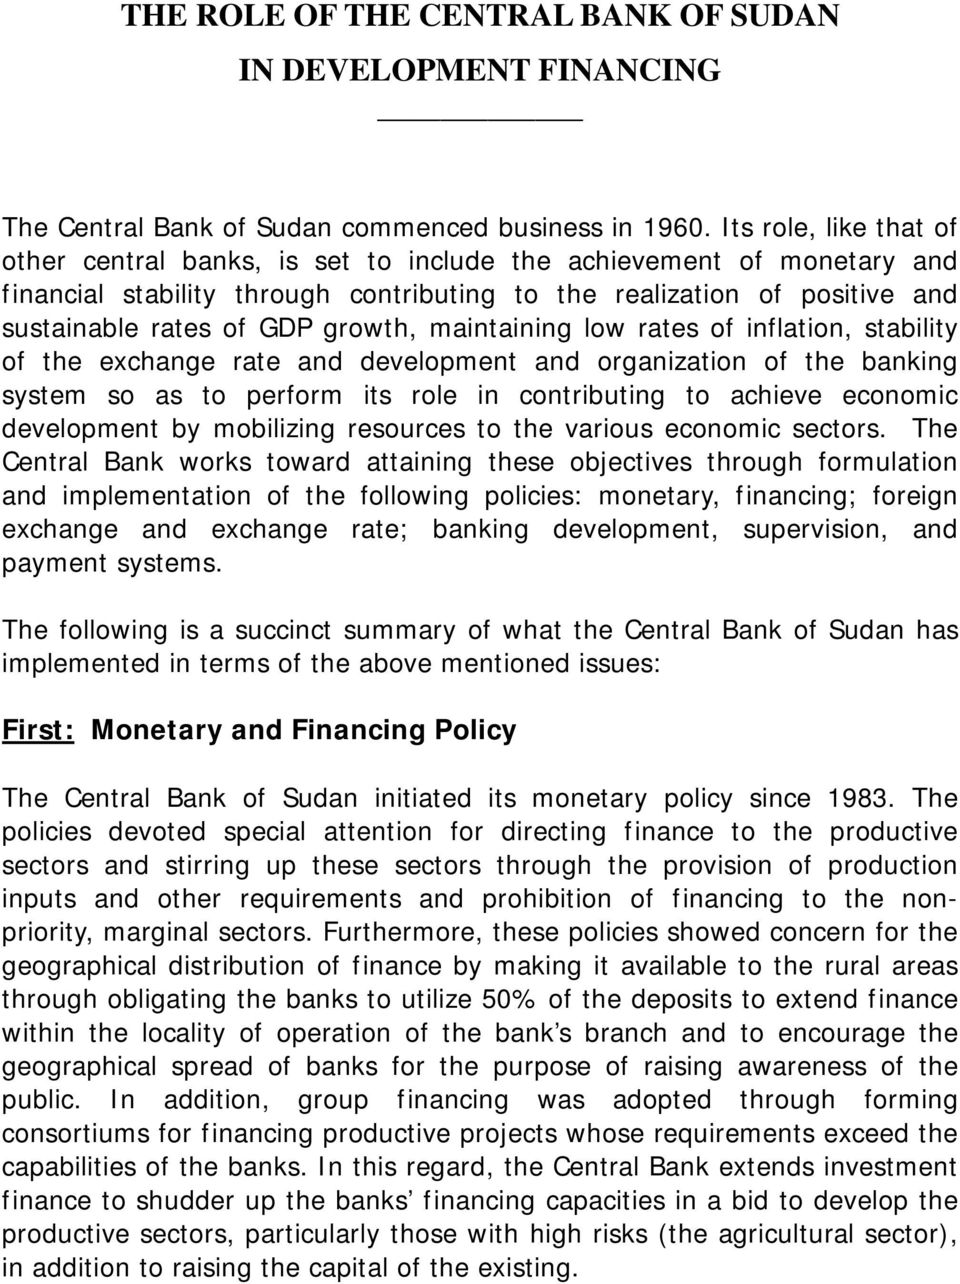 growth, maintaining low rates of inflation, stability of the exchange rate and development and organization of the banking system so as to perform its role in contributing to achieve economic